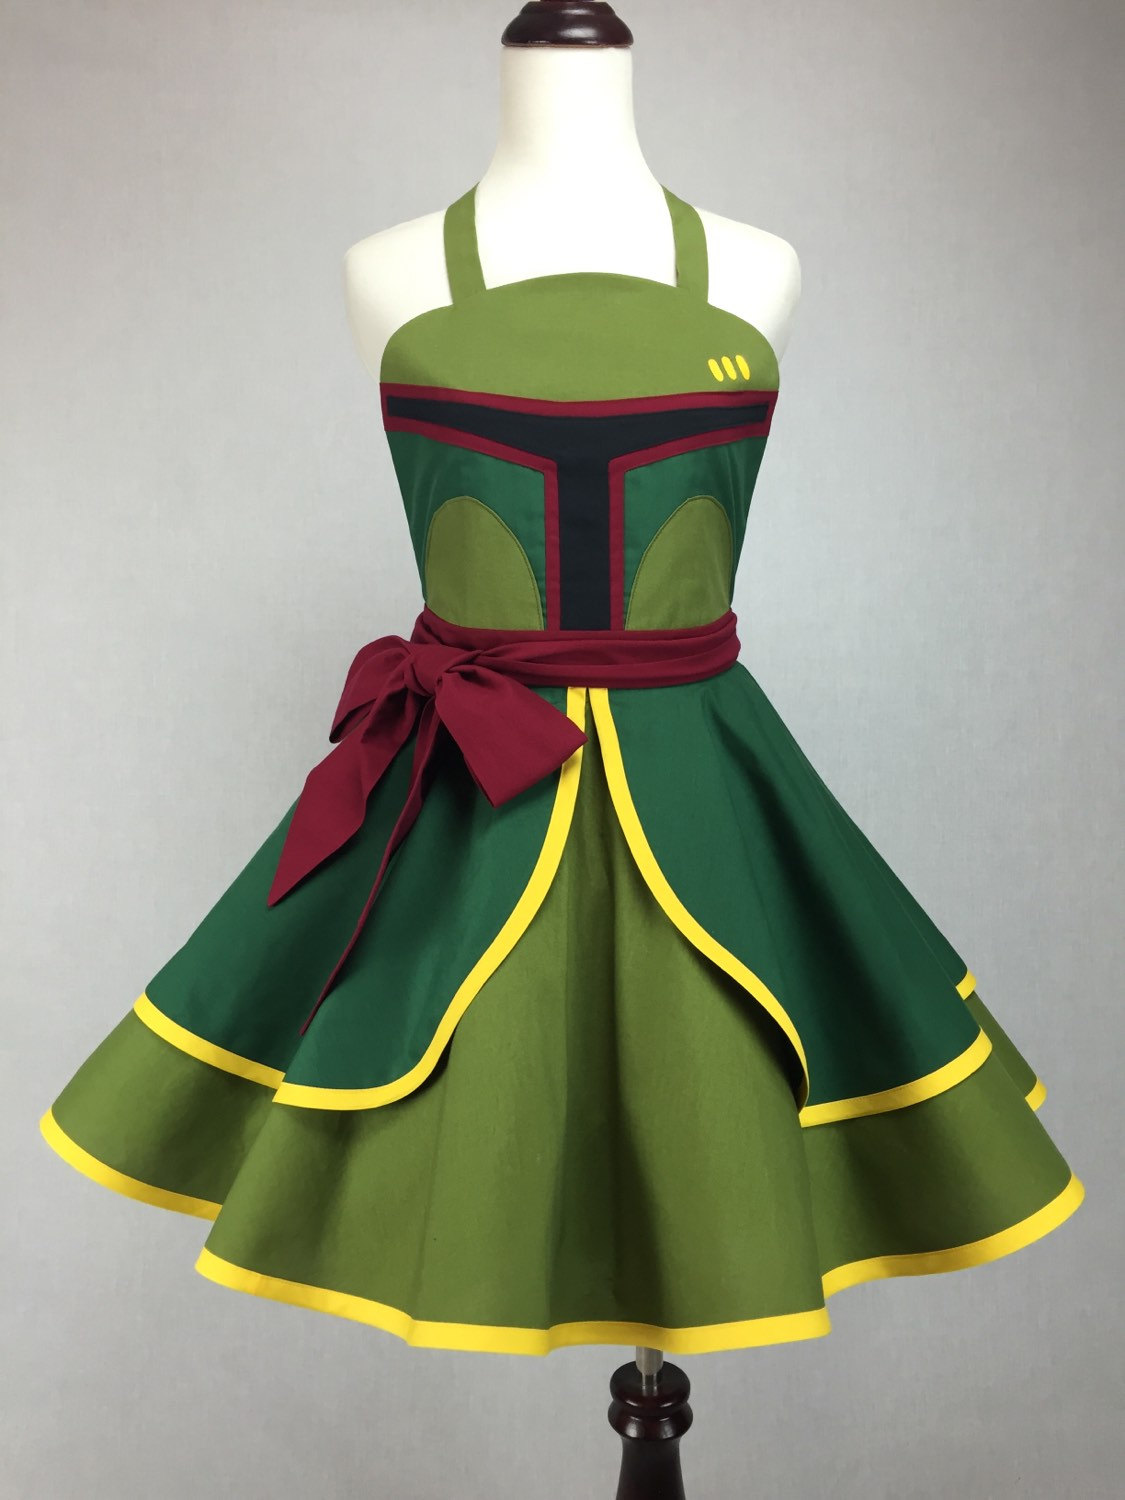 boba-fett-pin-up-style-cosplay-dress-and-more